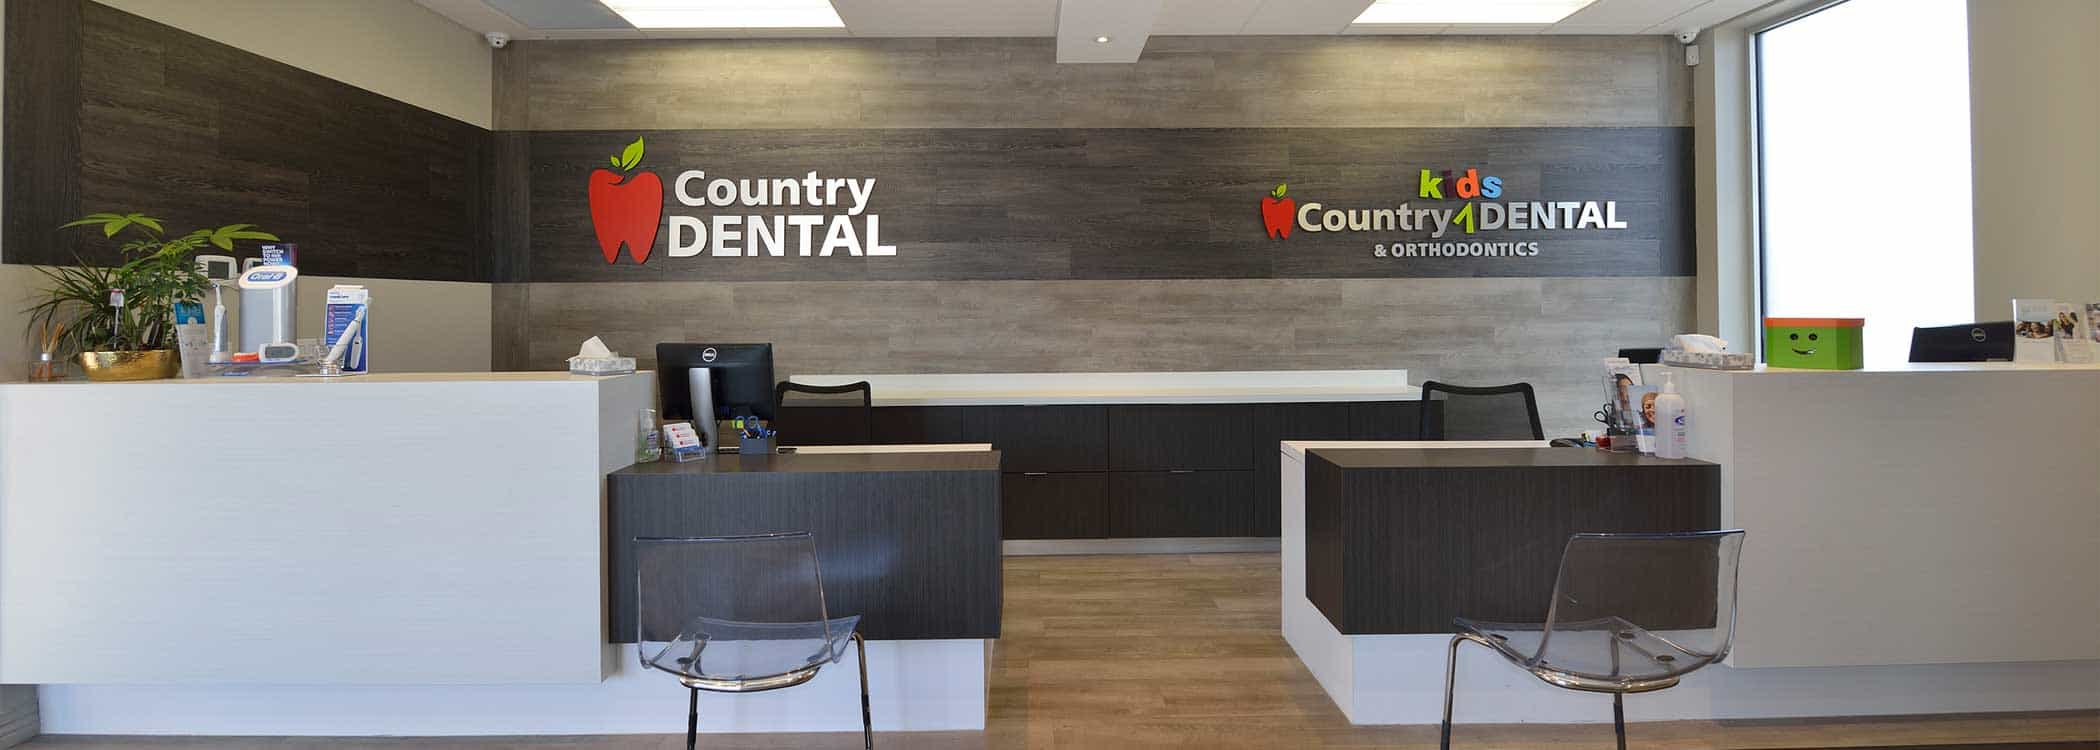 Reception at Country Dental & Kid's Dental clinic